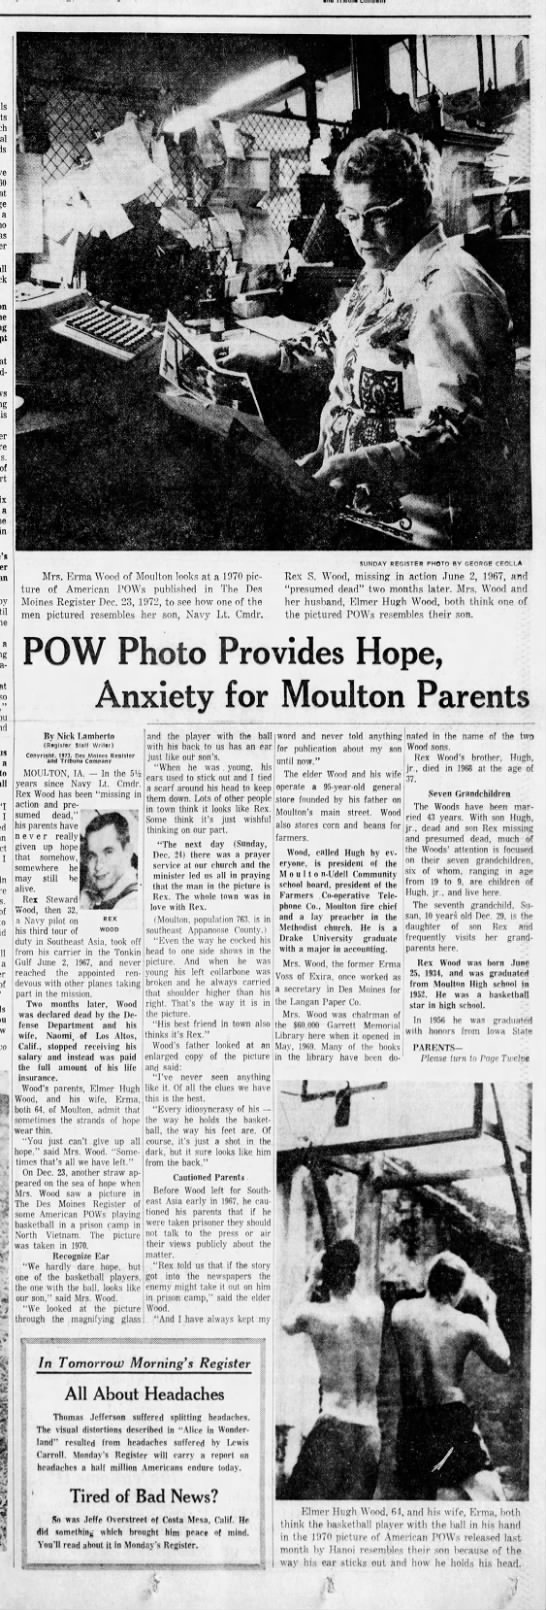 POW photo provides hope; anxiety for Moulton parents: Elmer and Erma Wood -